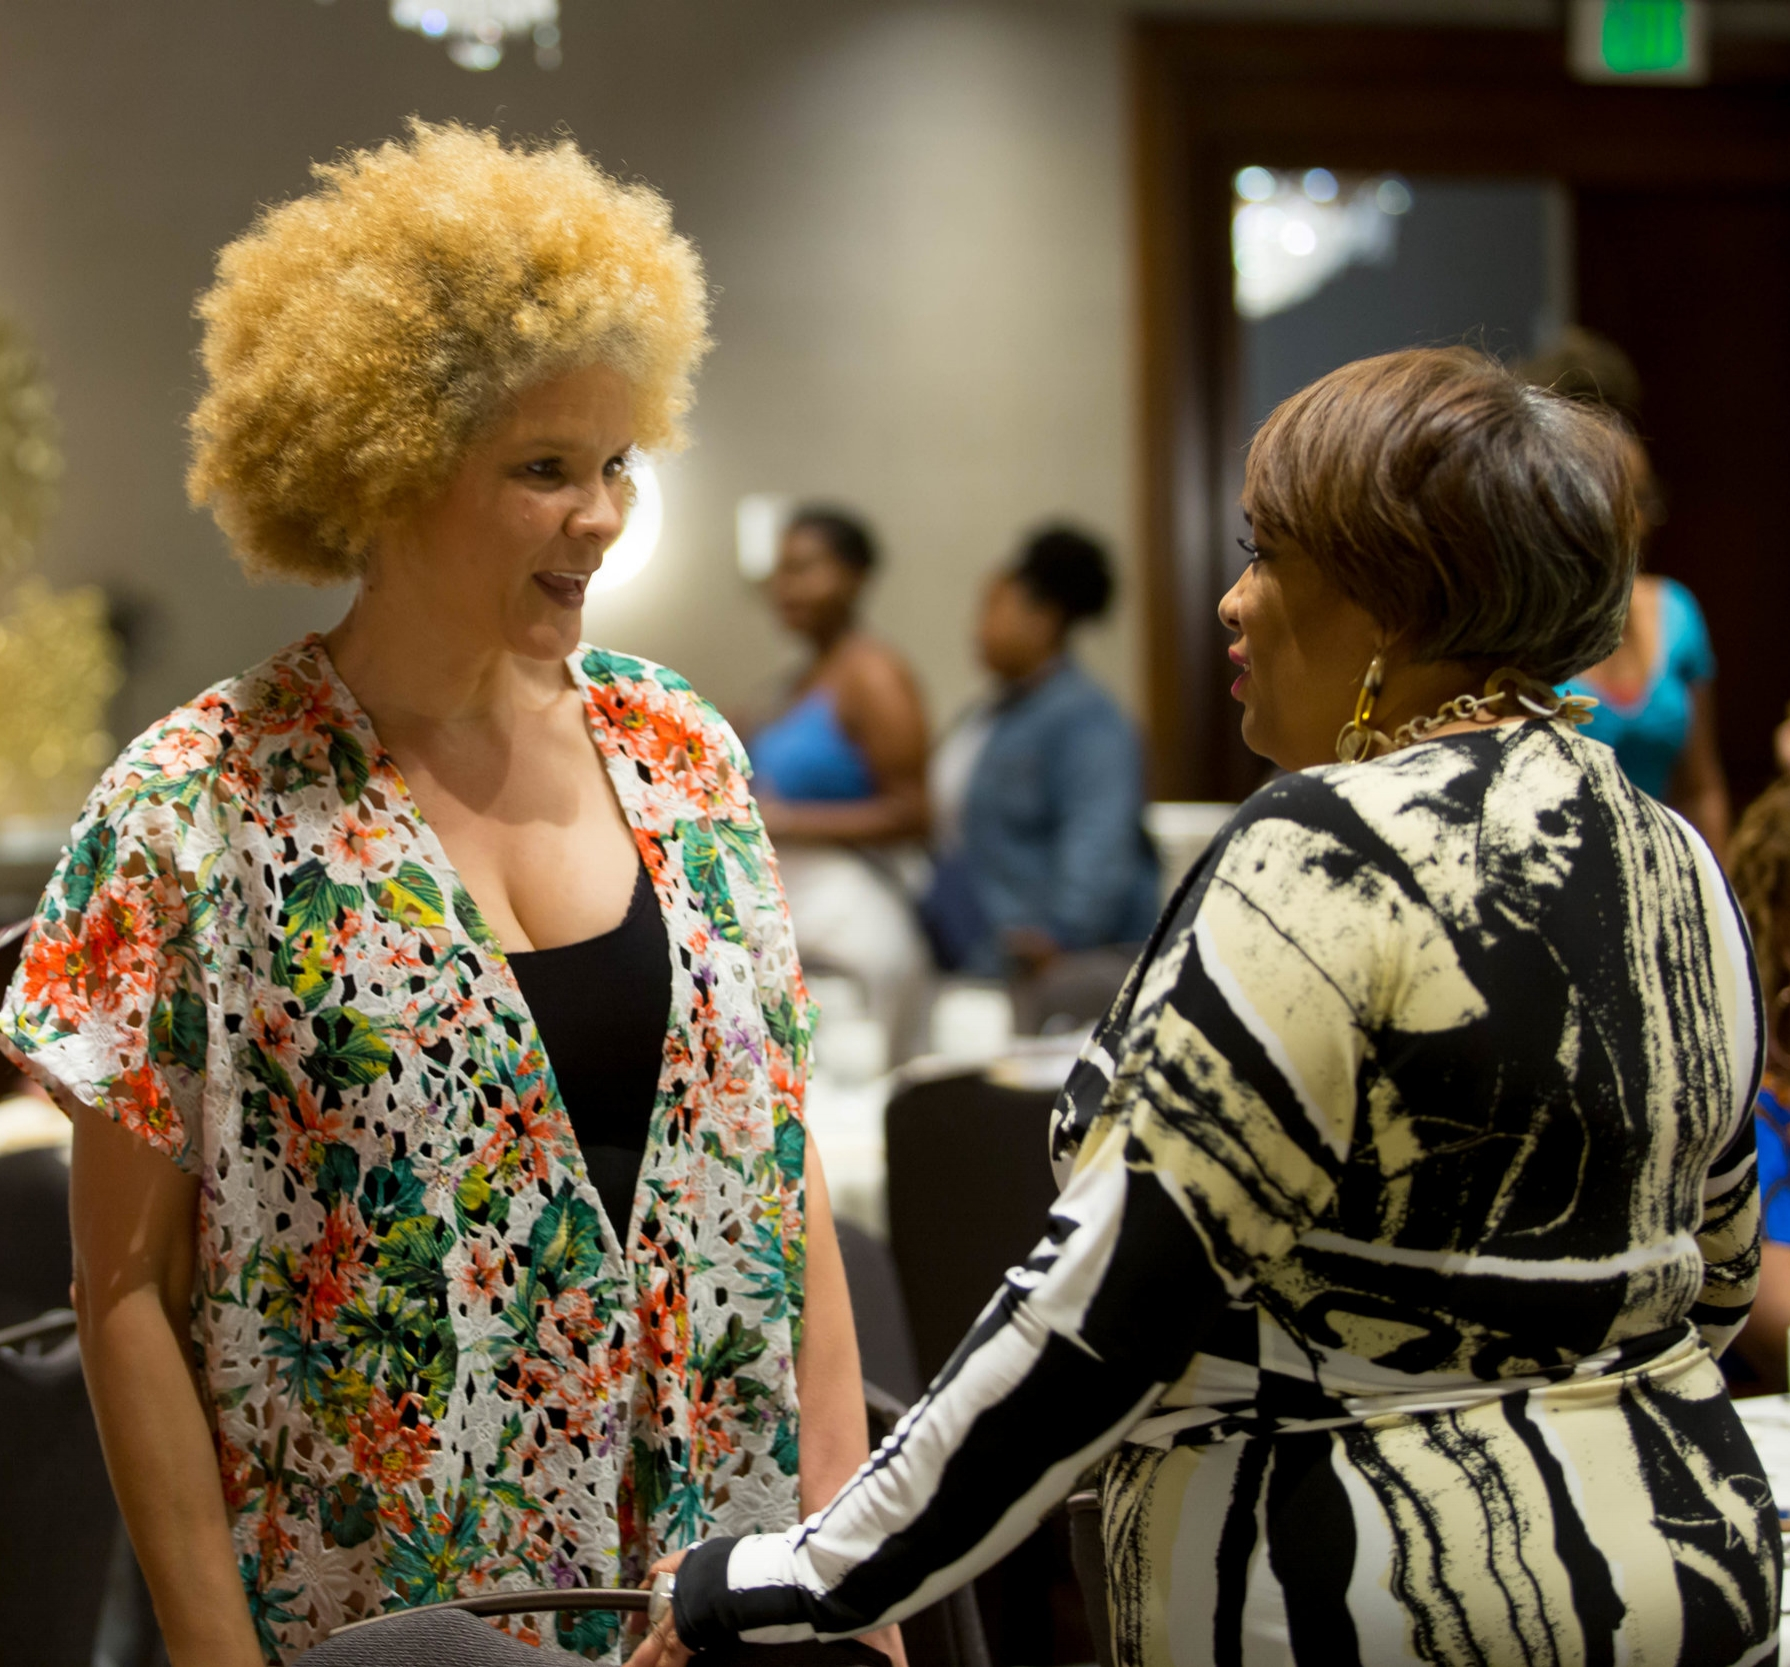 - Acclaimed writer and Decades Supporter Michaela Angela Davis chatting with honoree Dyana Williams before the brunch.